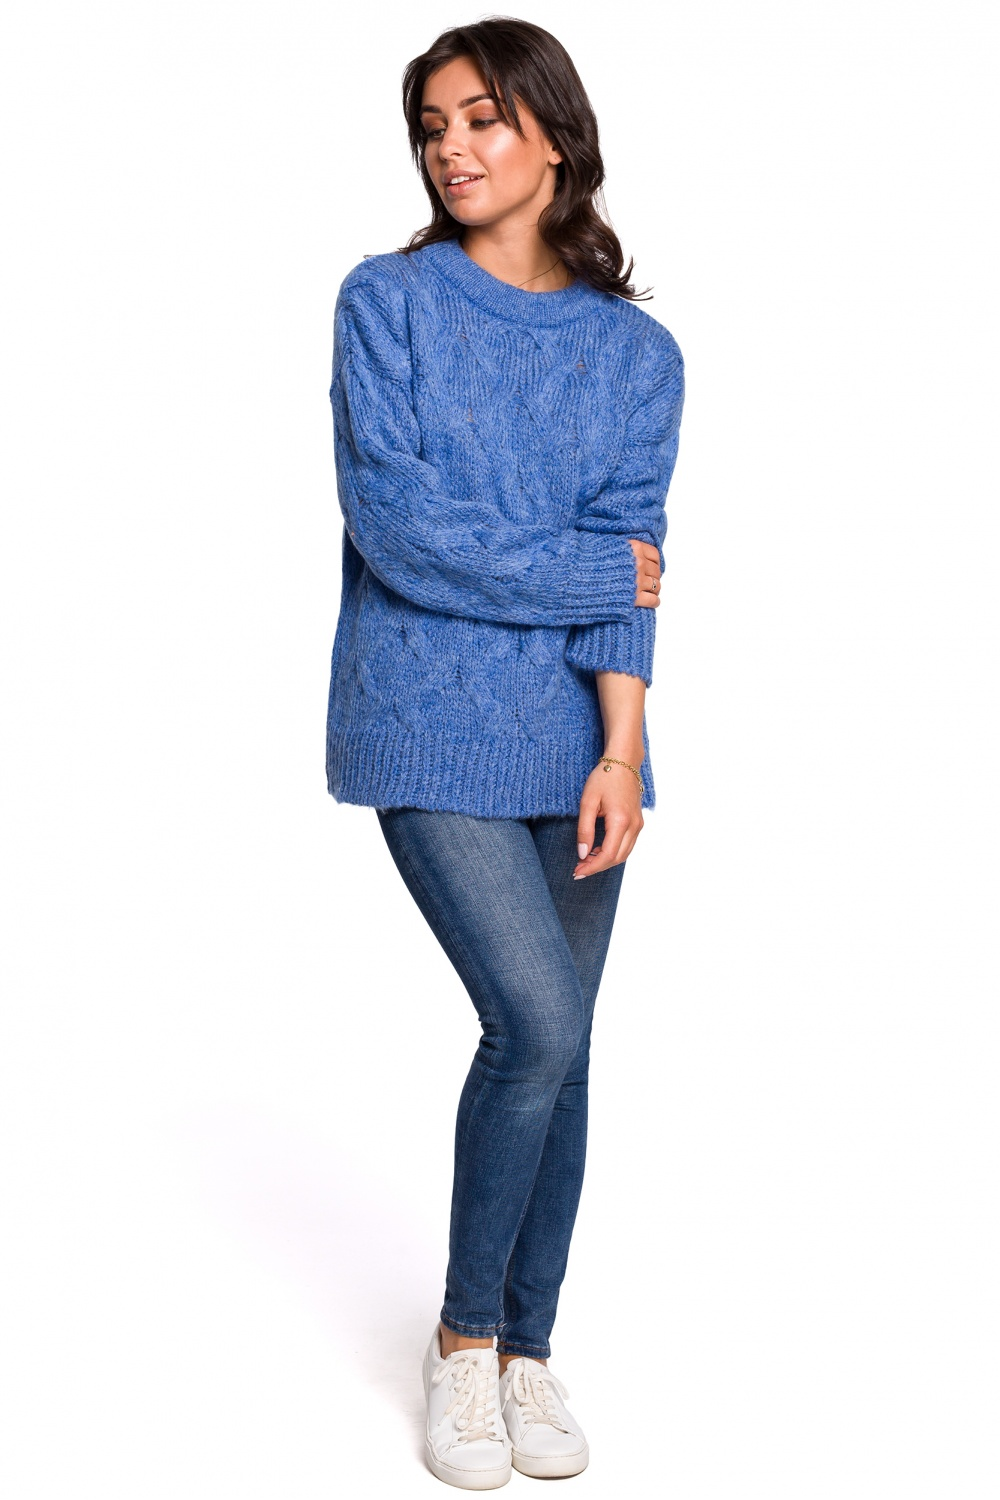 Pulover model 136422 BE Knit